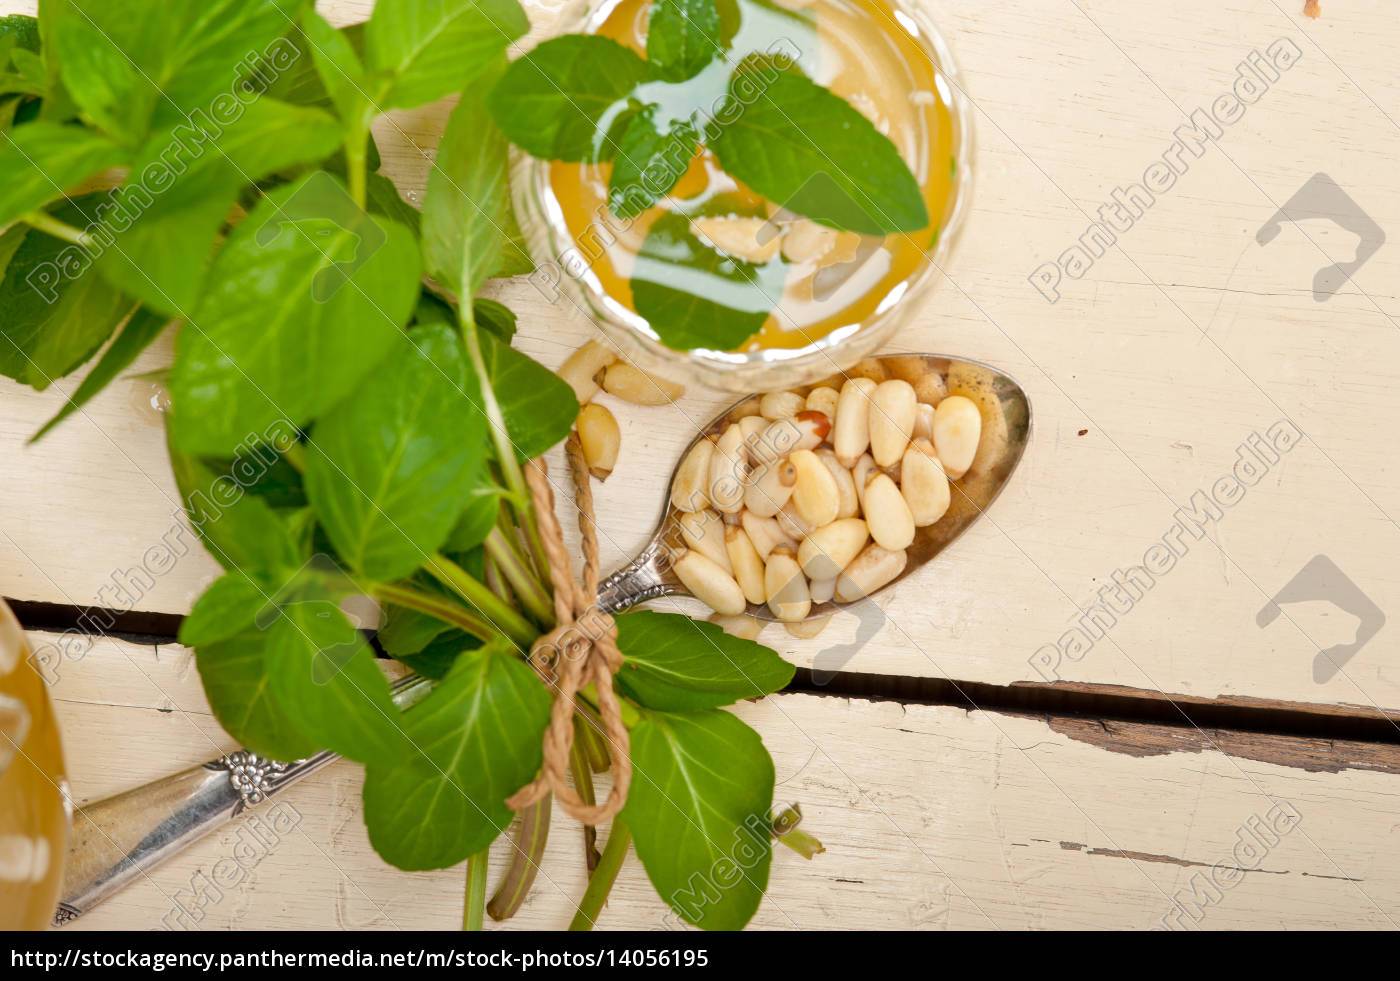 arab, traditional, mint, and, pine, nuts - 14056195